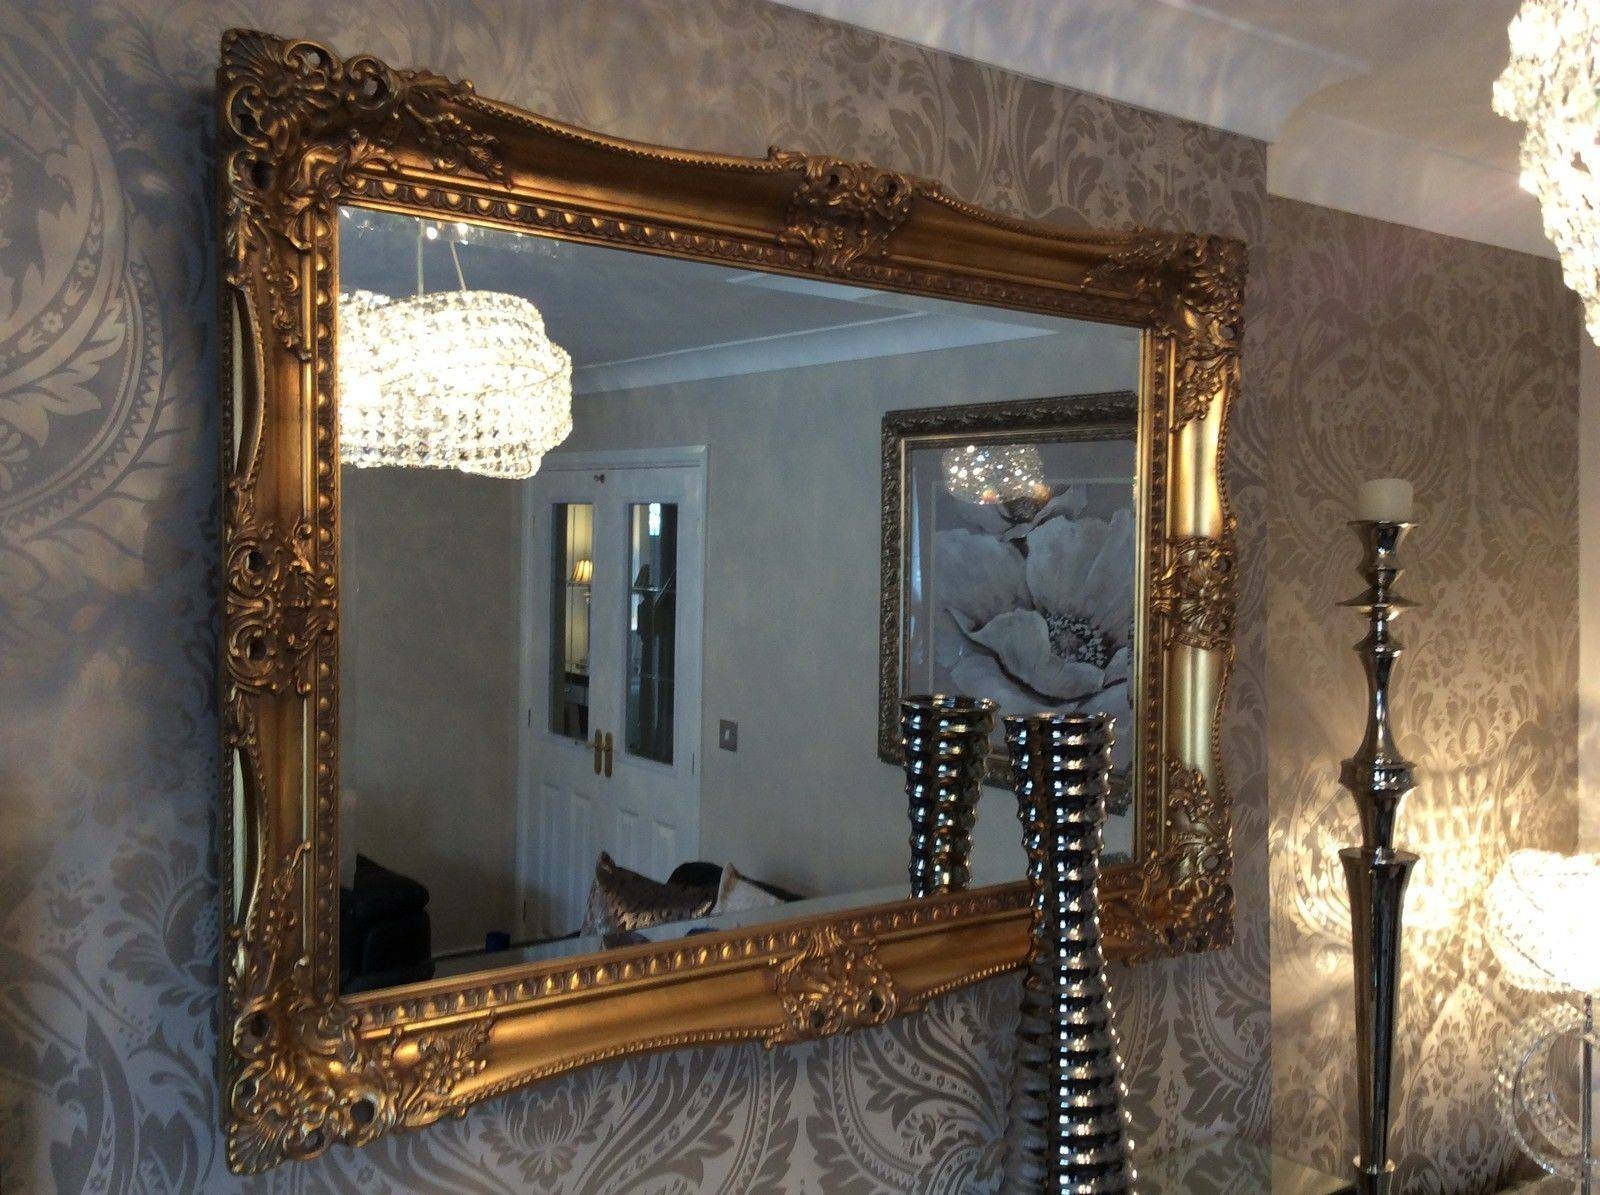 X Large Antique Gold Shabby Chic Ornate Decorative Wall Mirror inside Cream Antique Mirrors (Image 25 of 25)